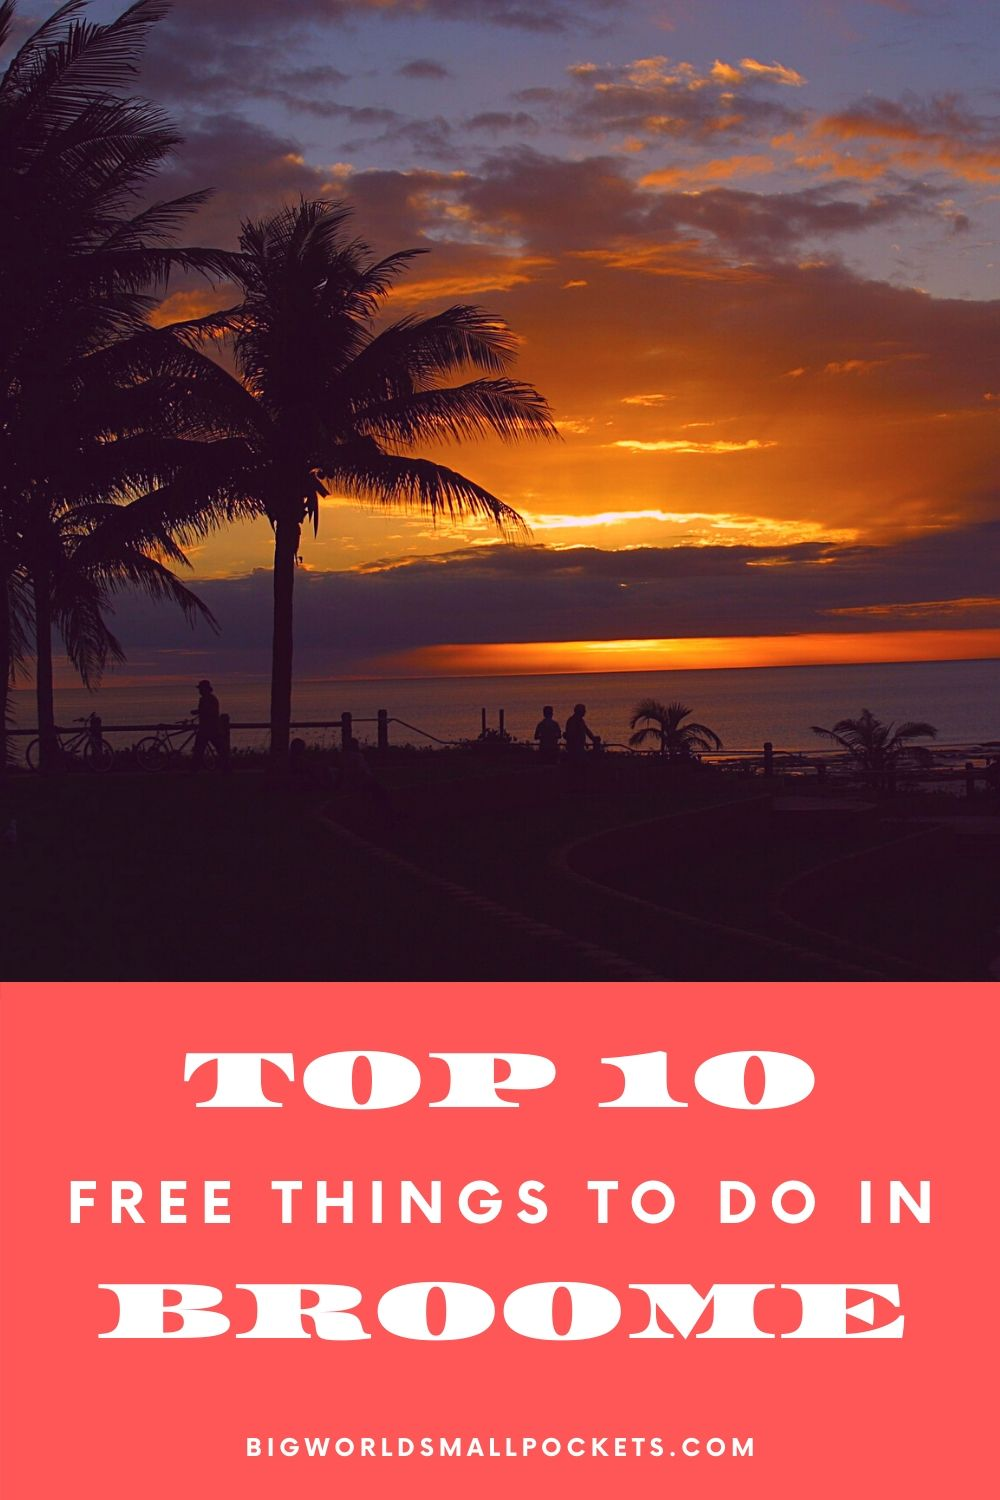 The Top 10 Free Things To Do in Broome